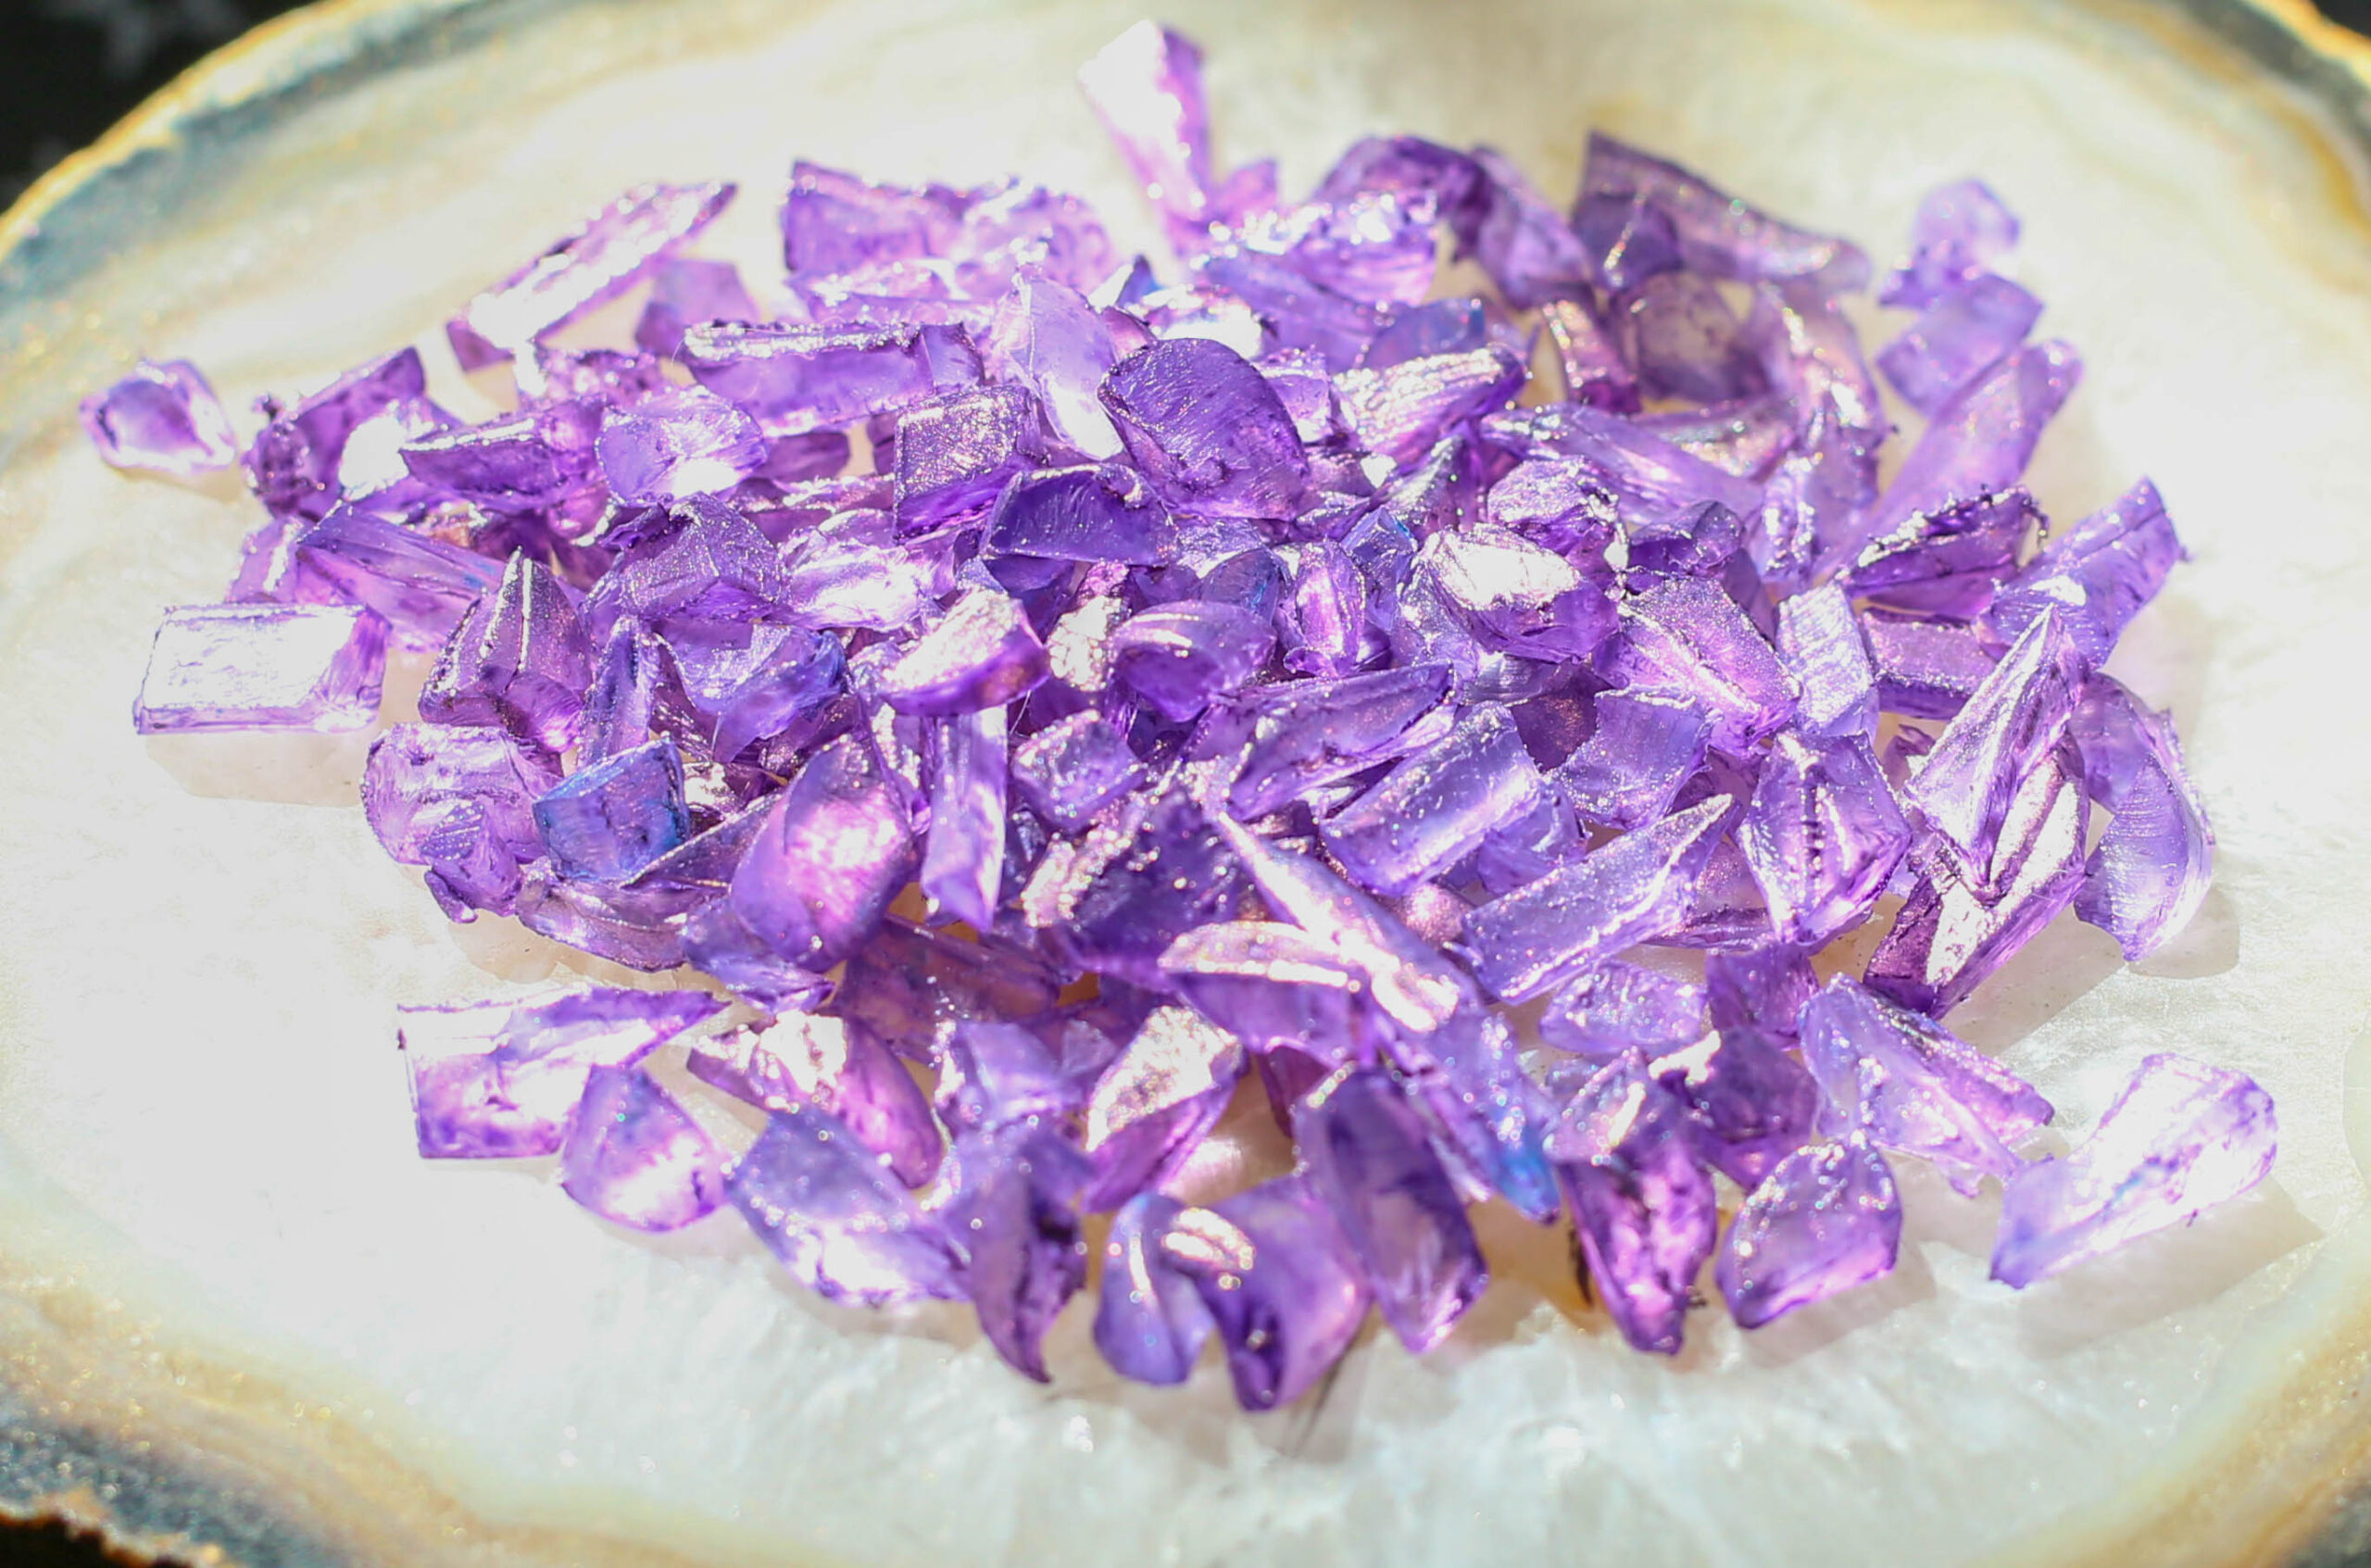 faux amethyst crystals made with FolkArt Color Shift Paint